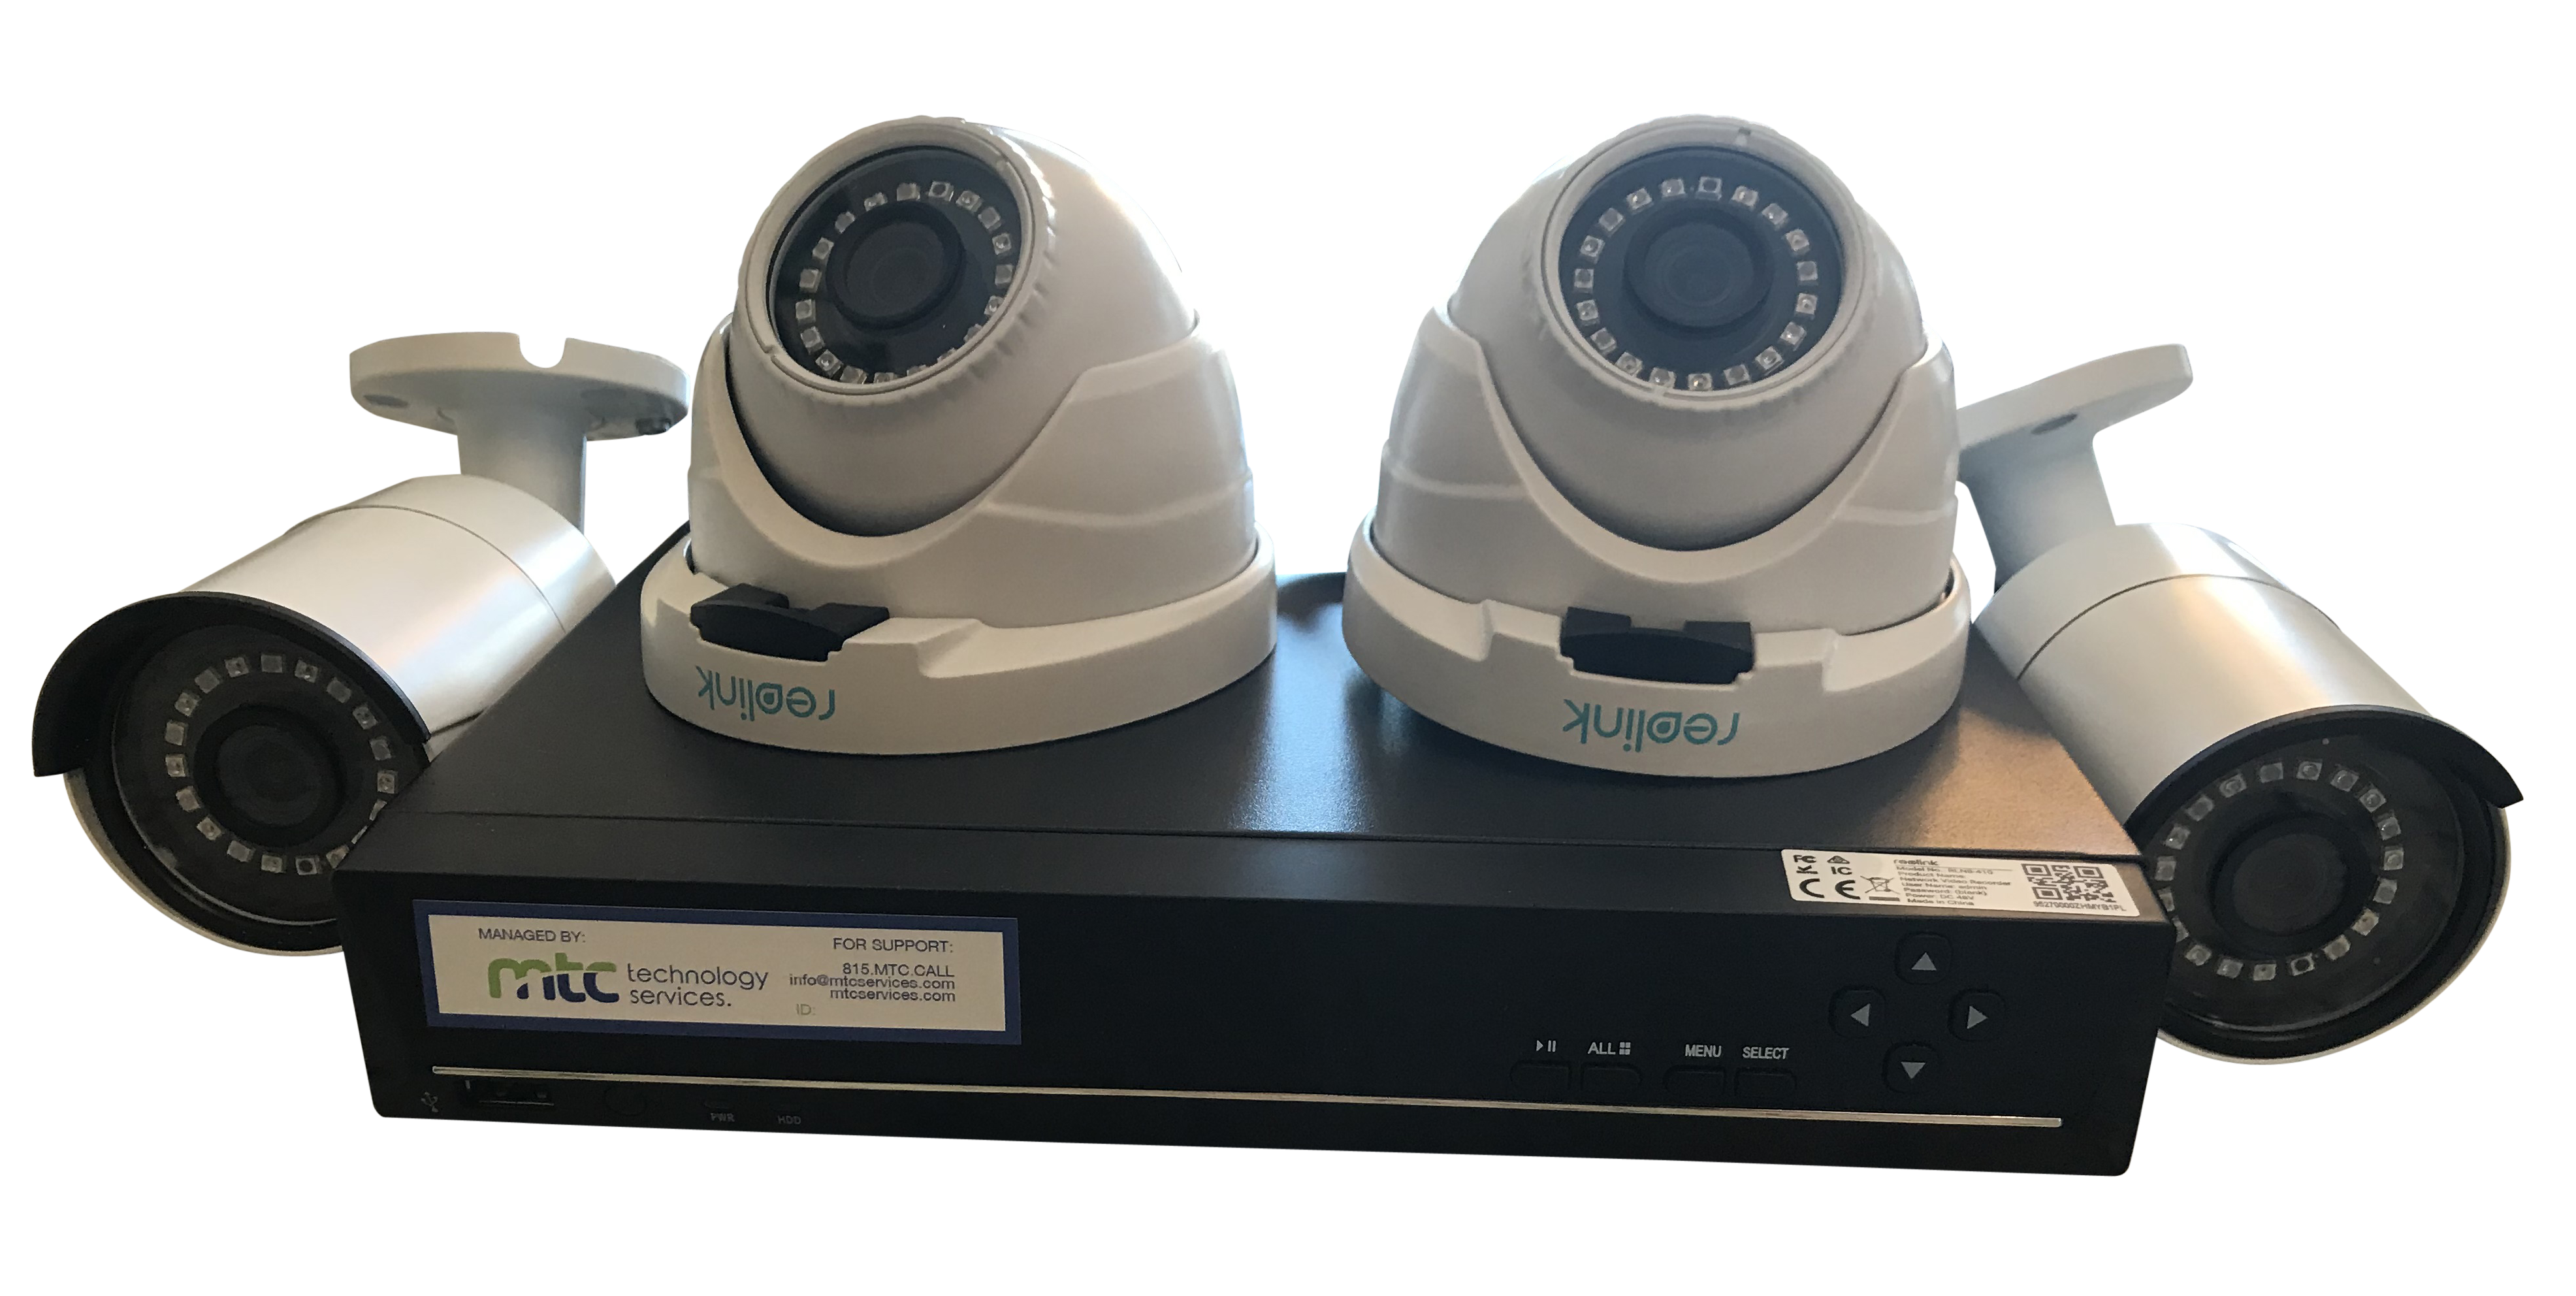 security camera system rockford